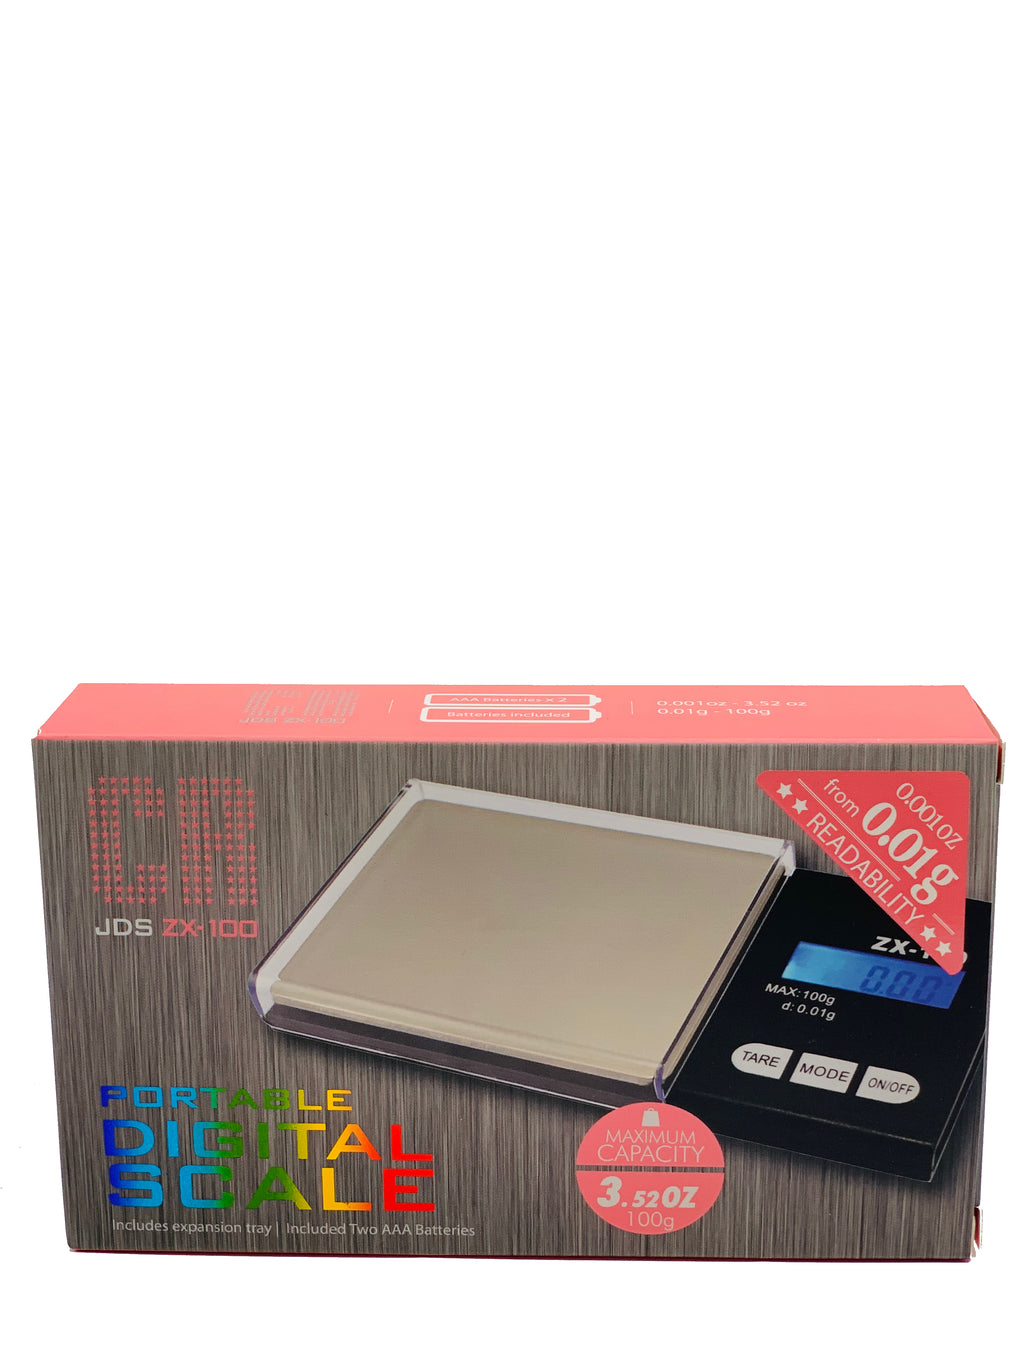 CR DIGITAL SCALE JDS ZX-100 0.01G